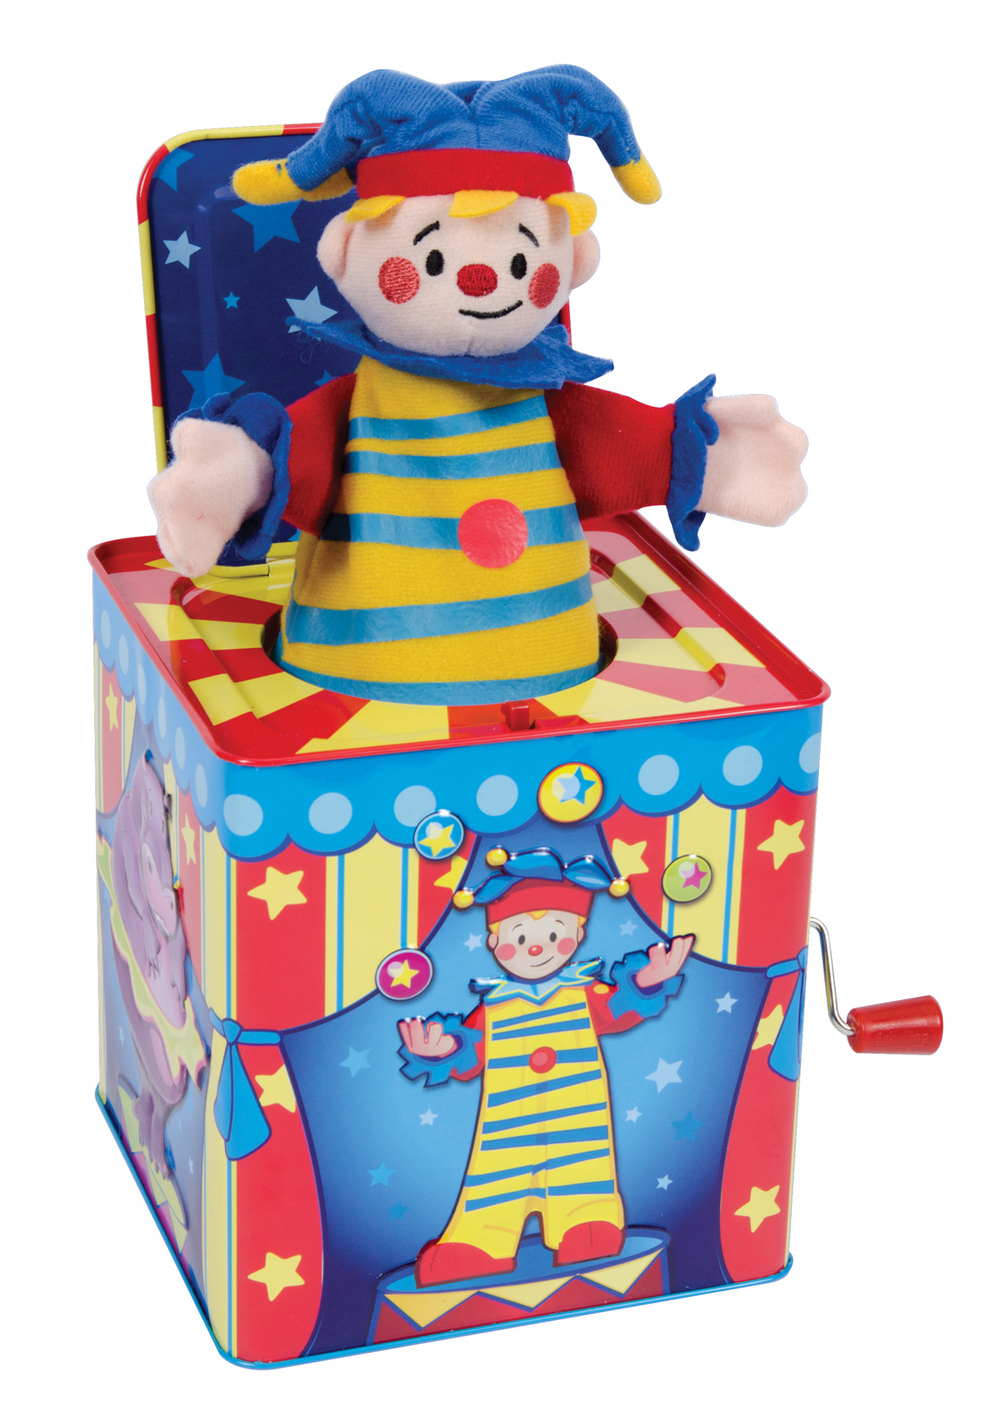 silly-circus-jack-in-the-box-scjb.jpg